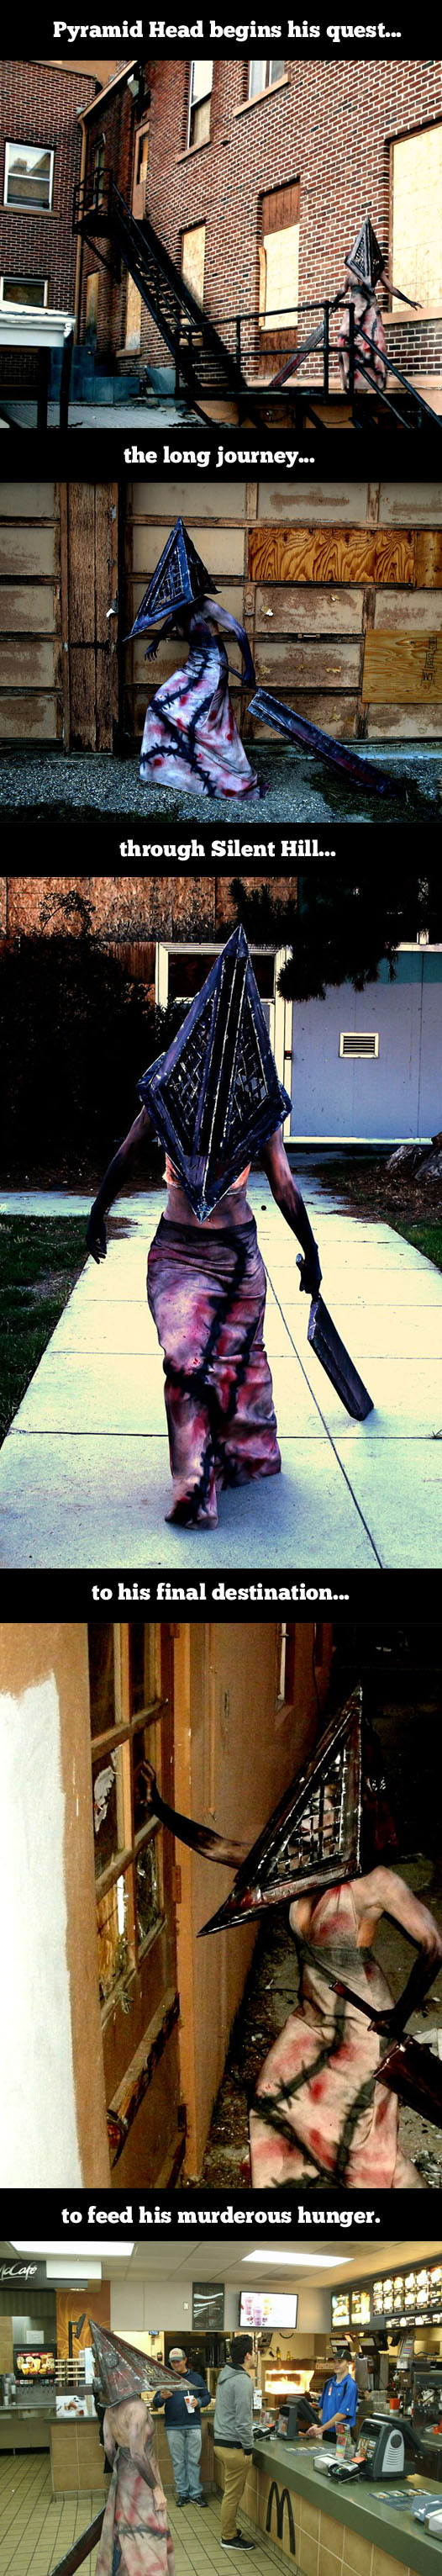 funny-Pyramid-Head-costume-girl